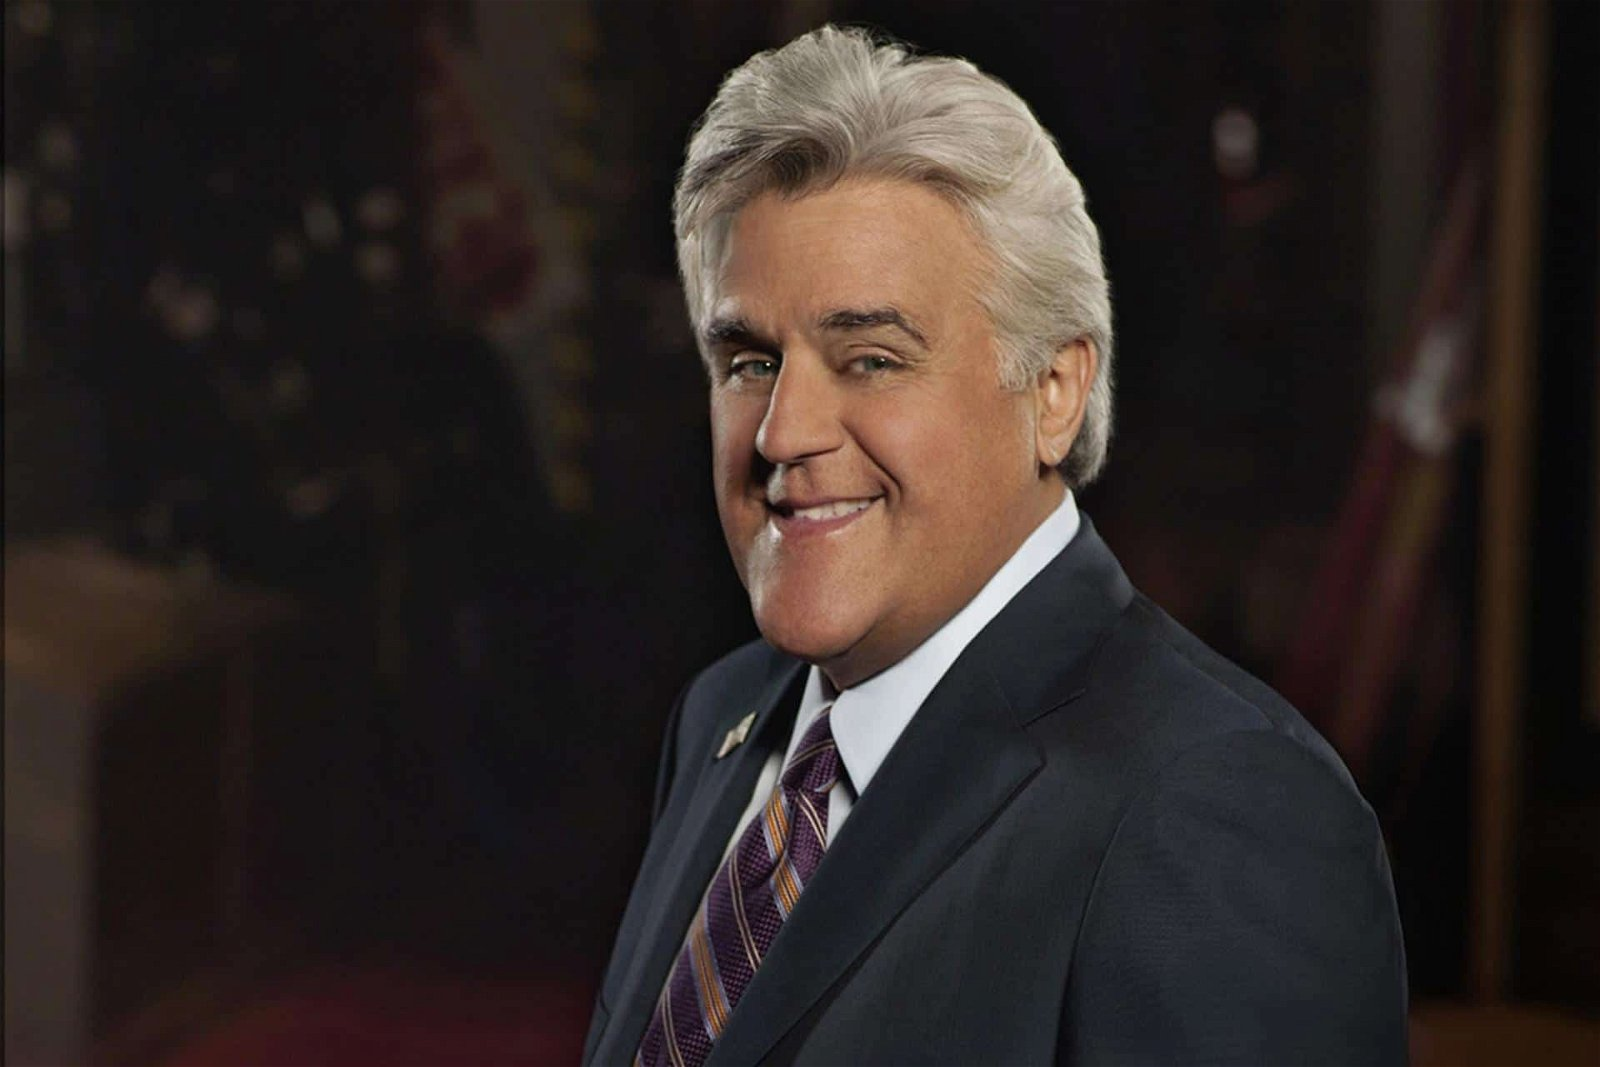 Jay Leno – Aces of Comedy